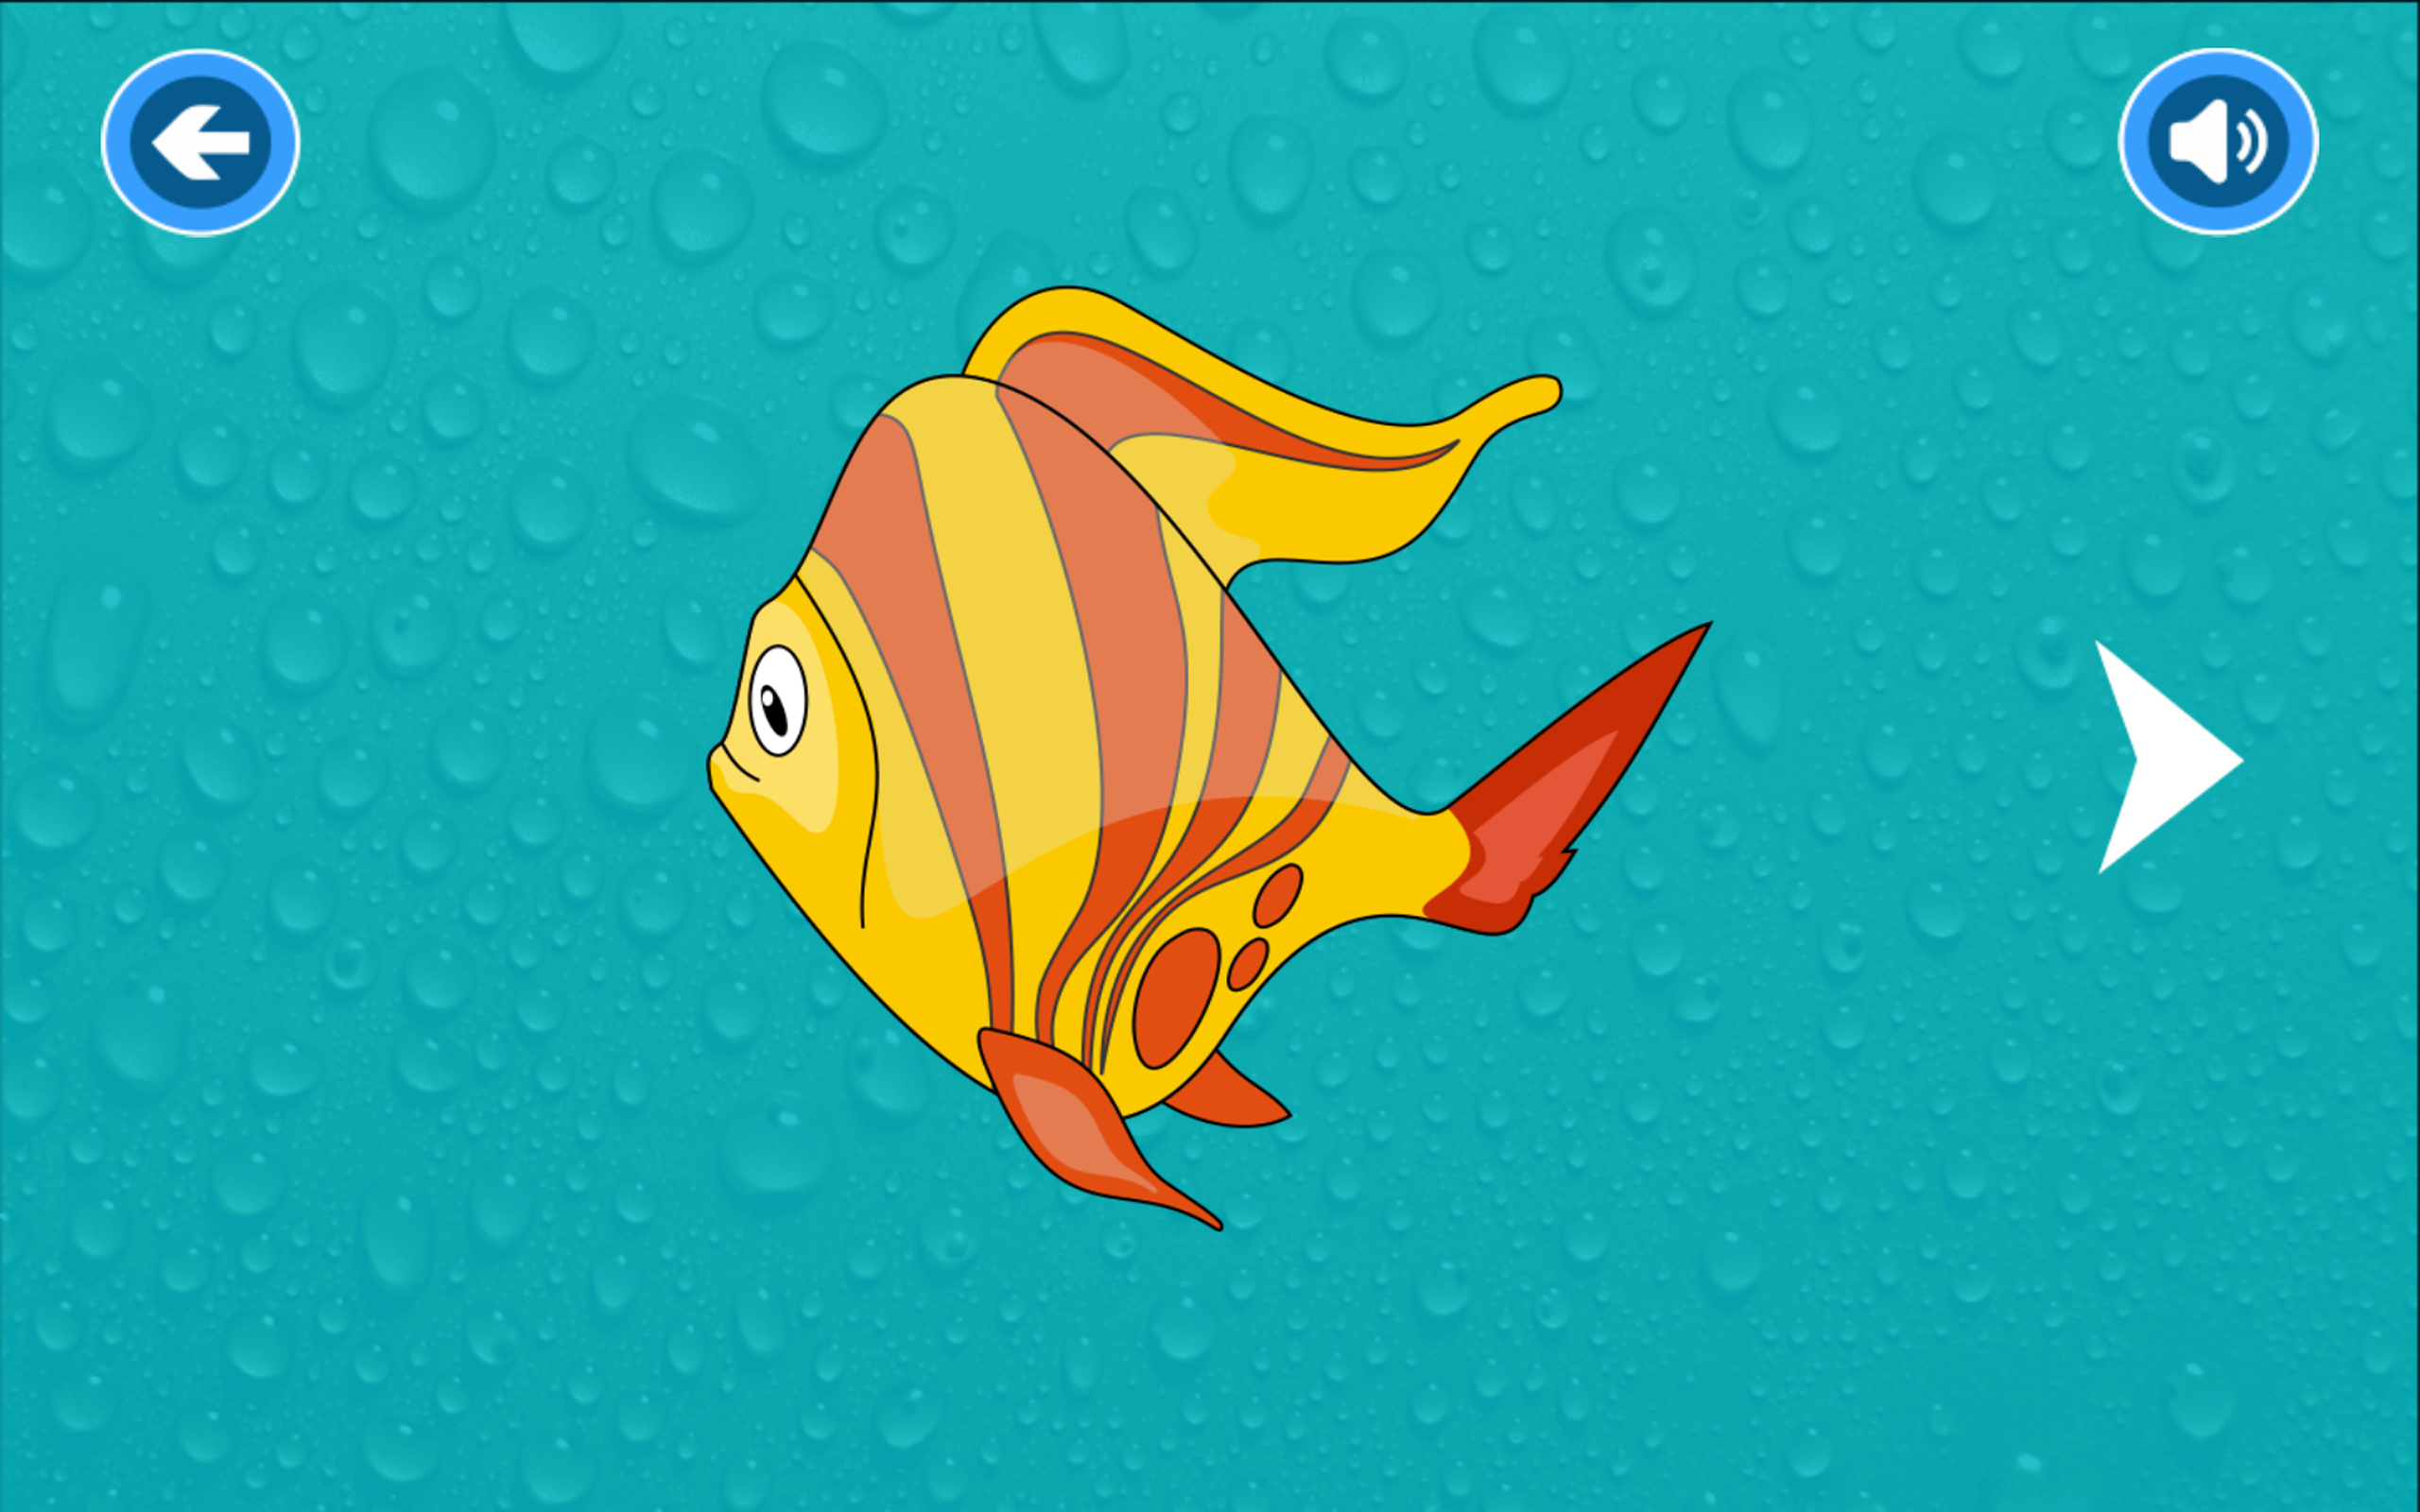 More fish in the sea hookup app